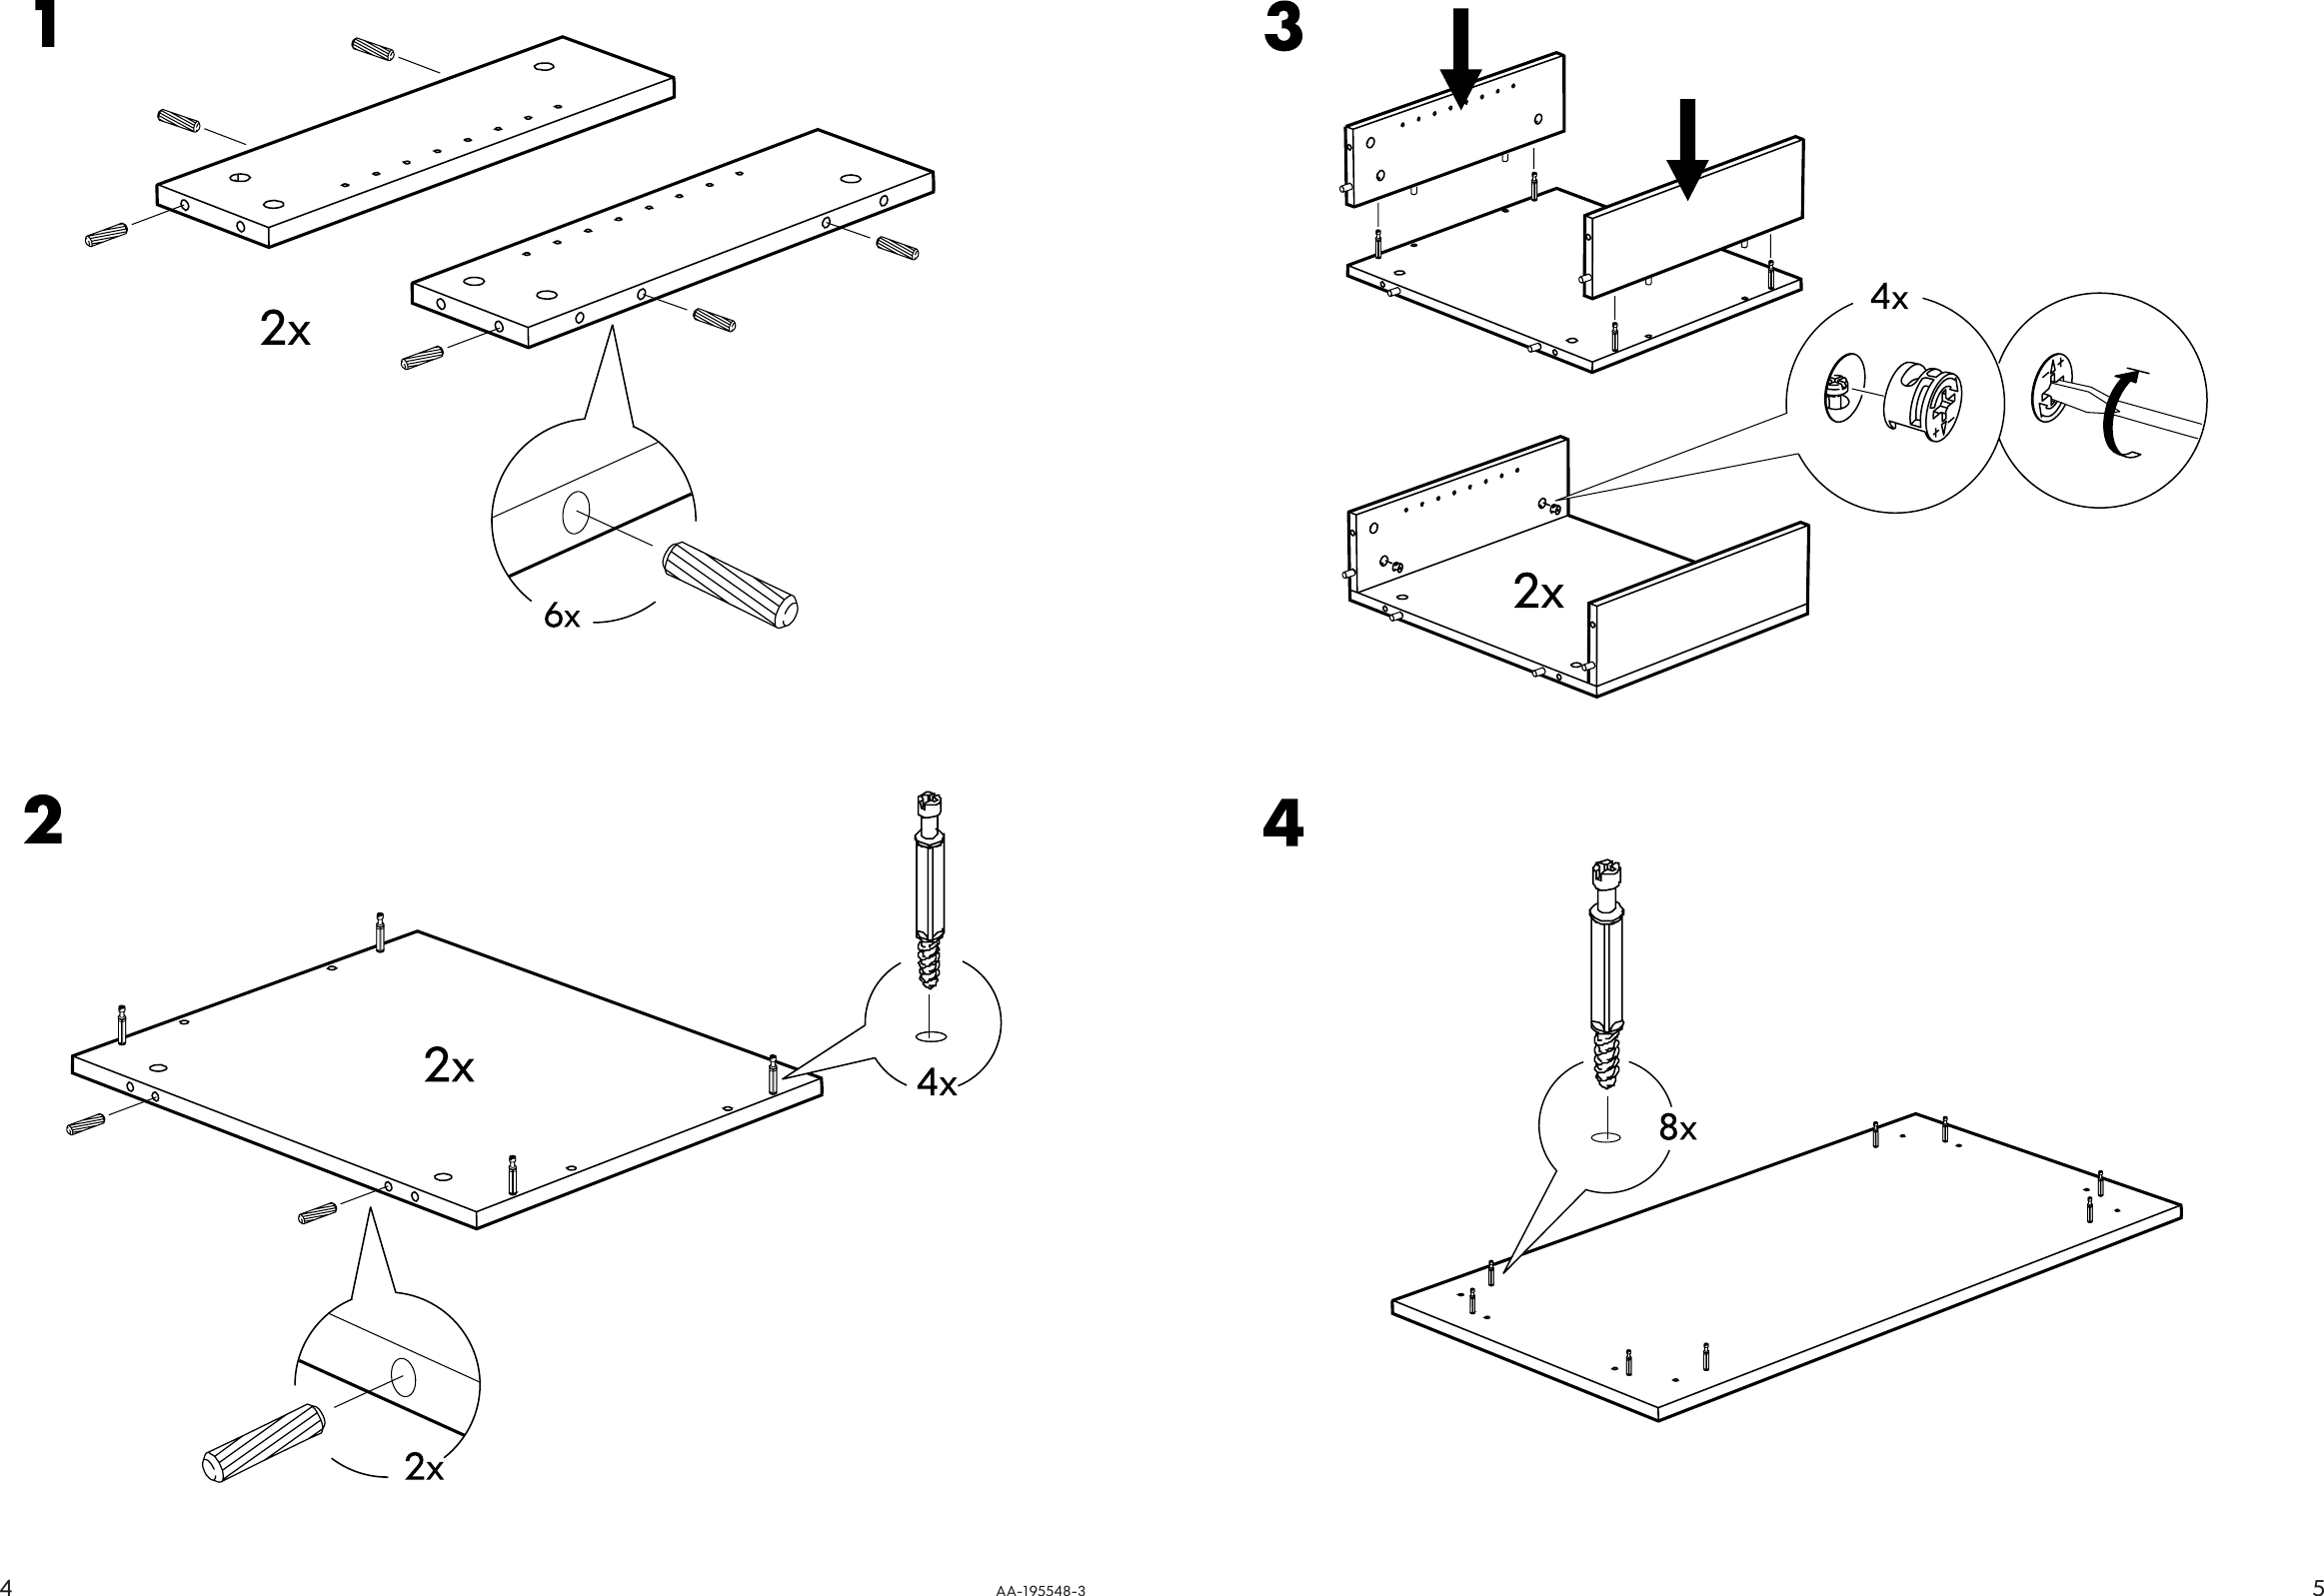 Ikea Benno Coffee Table 46 1 2X23 5 8 Assembly Instruction